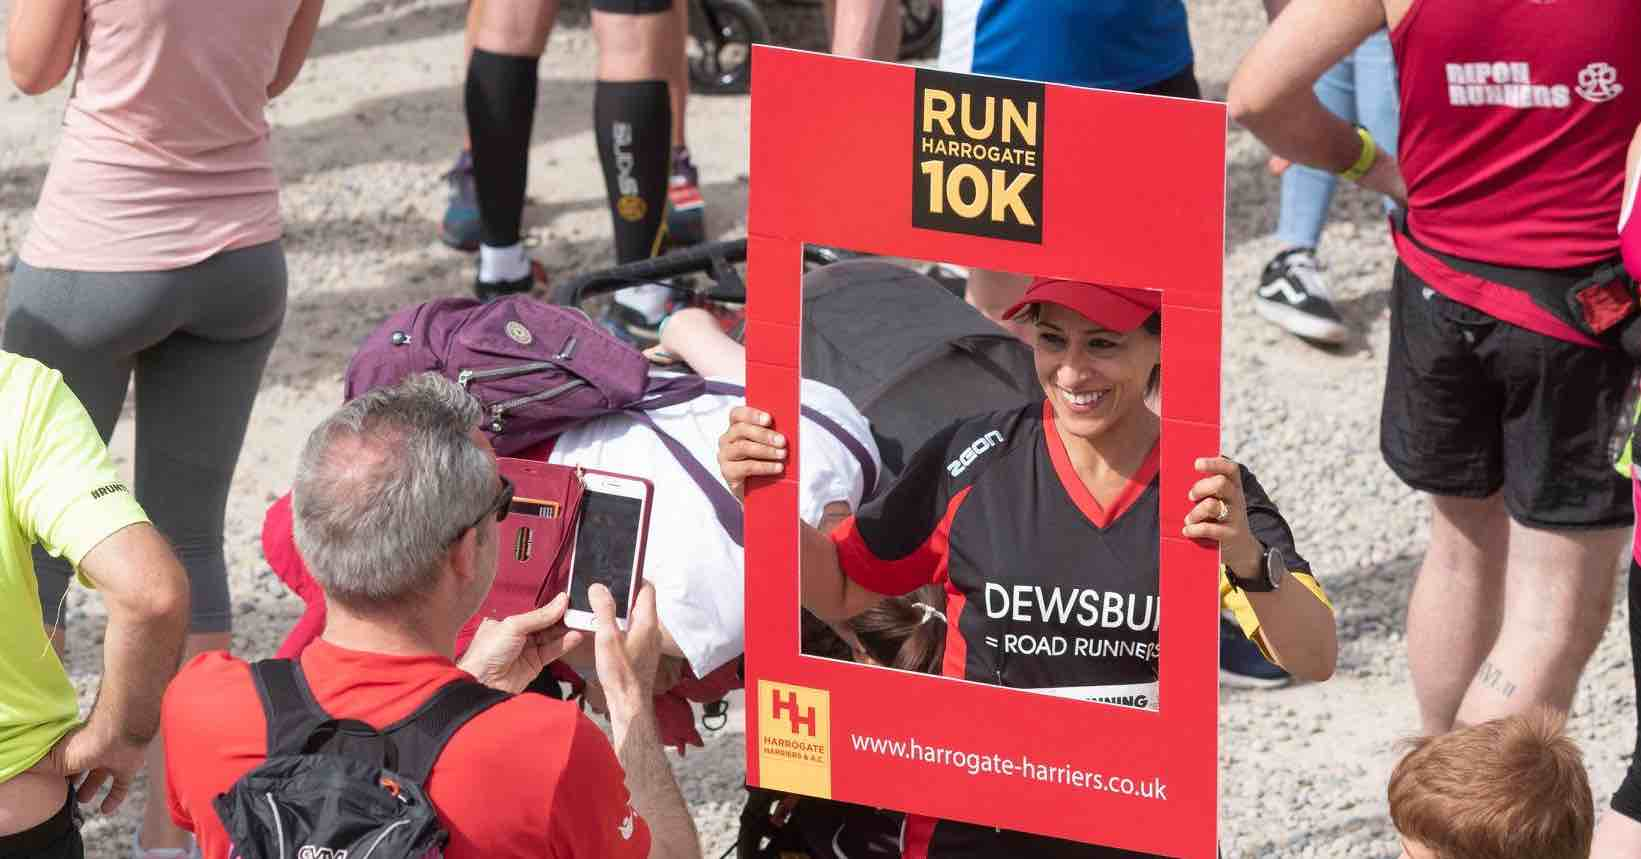 Run Harrogate 10k is back – with a life-saving cause to support